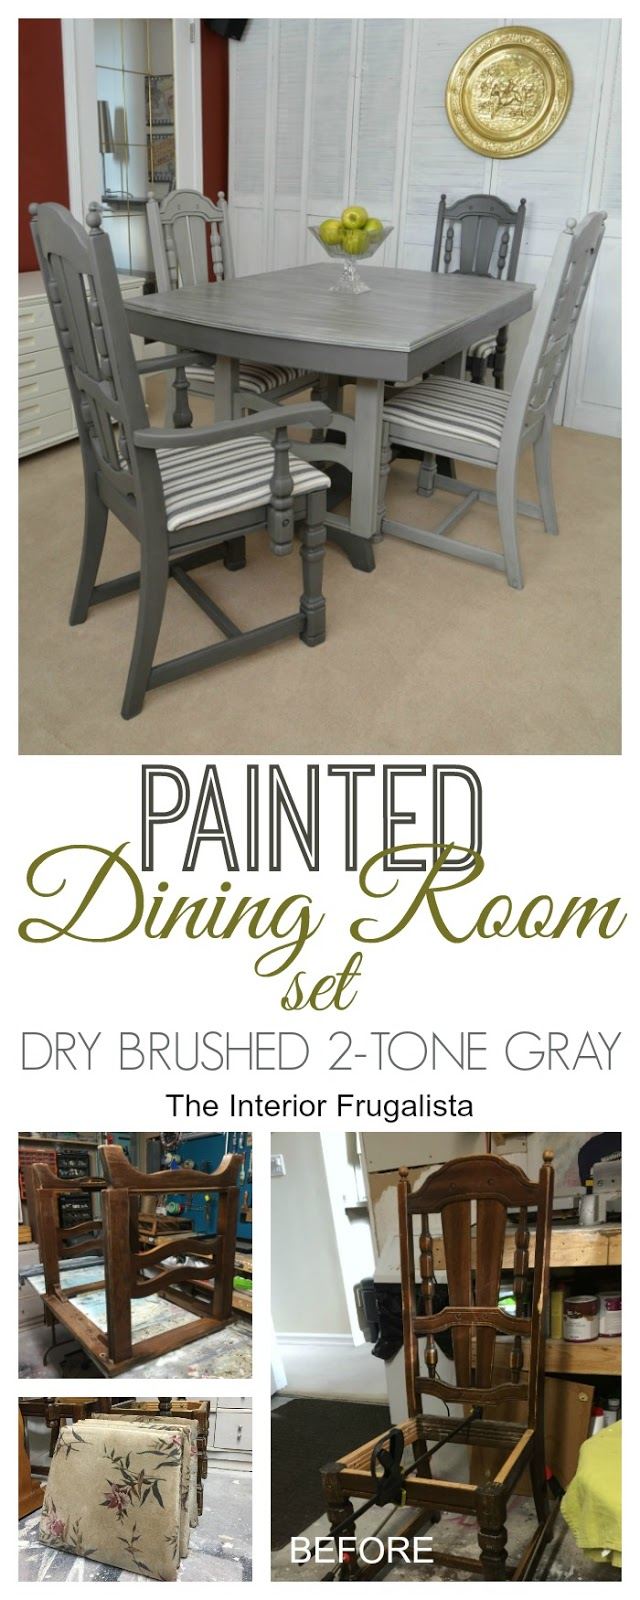 Painted Dining Room Set Before and After